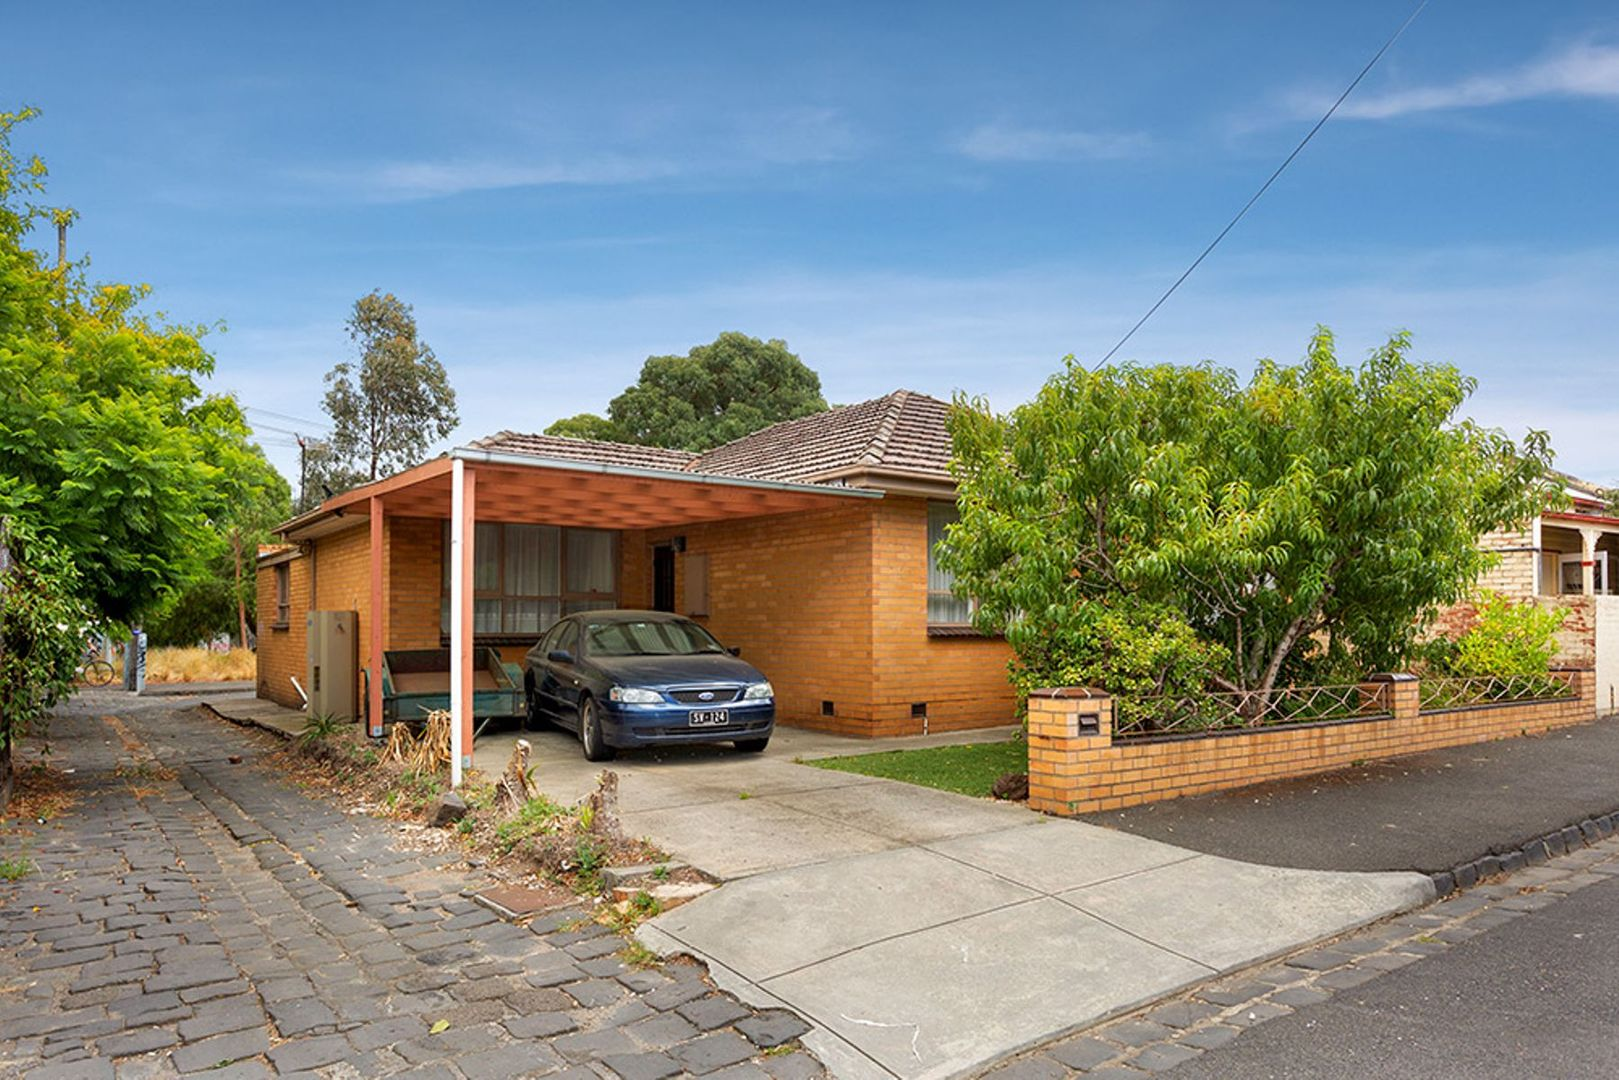 11-15 Eastham Street, Fitzroy North VIC 3068, Image 0